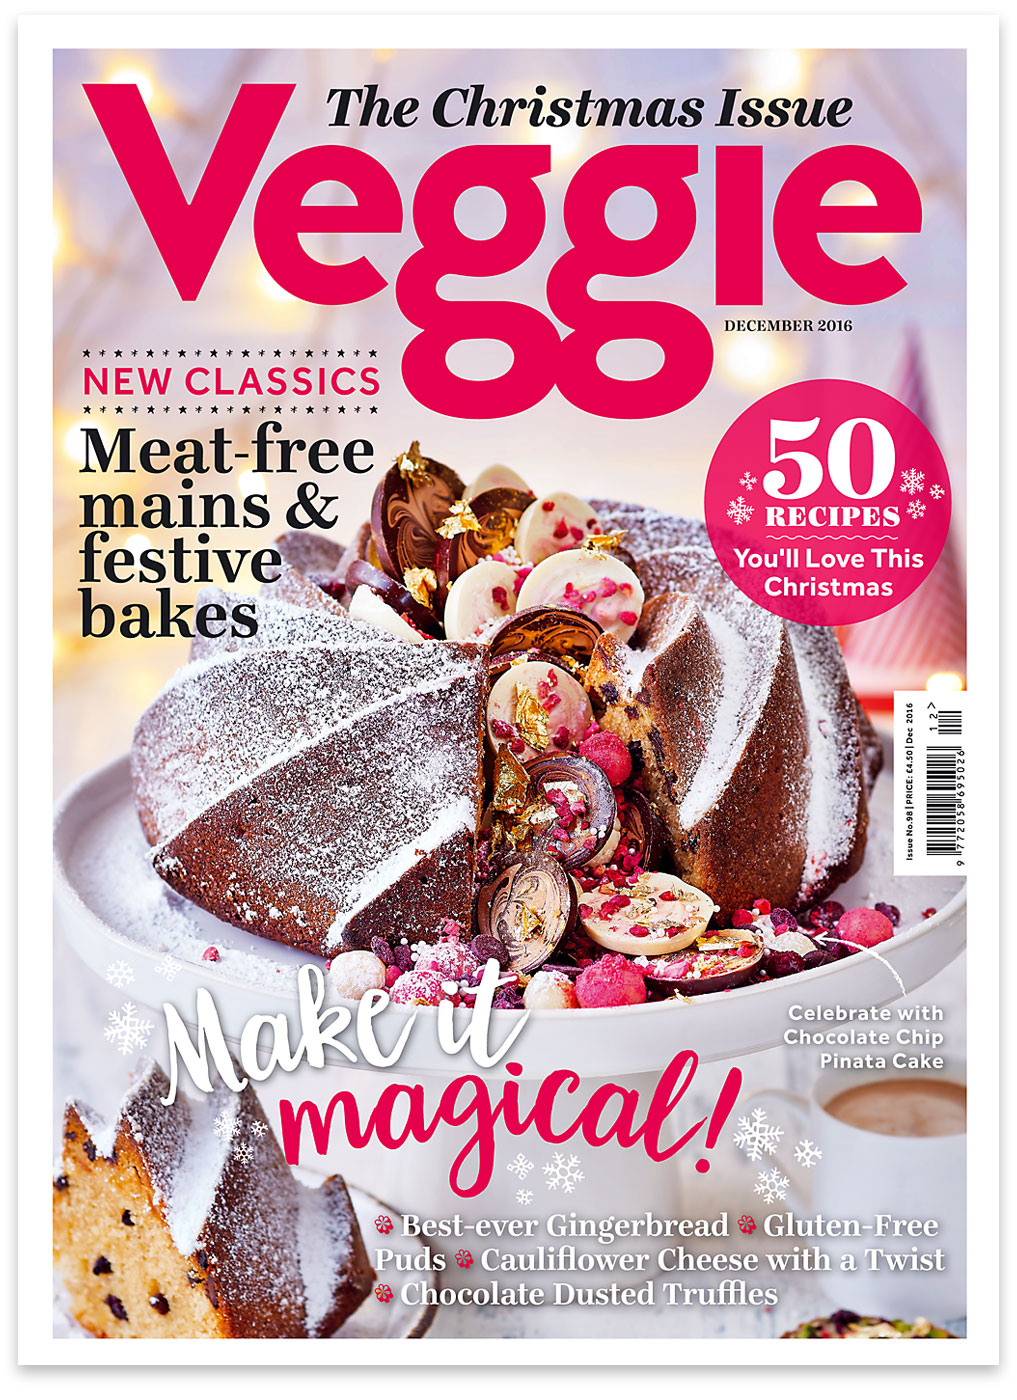 Veggie magazine December 2016 cover by CliQQ Photography